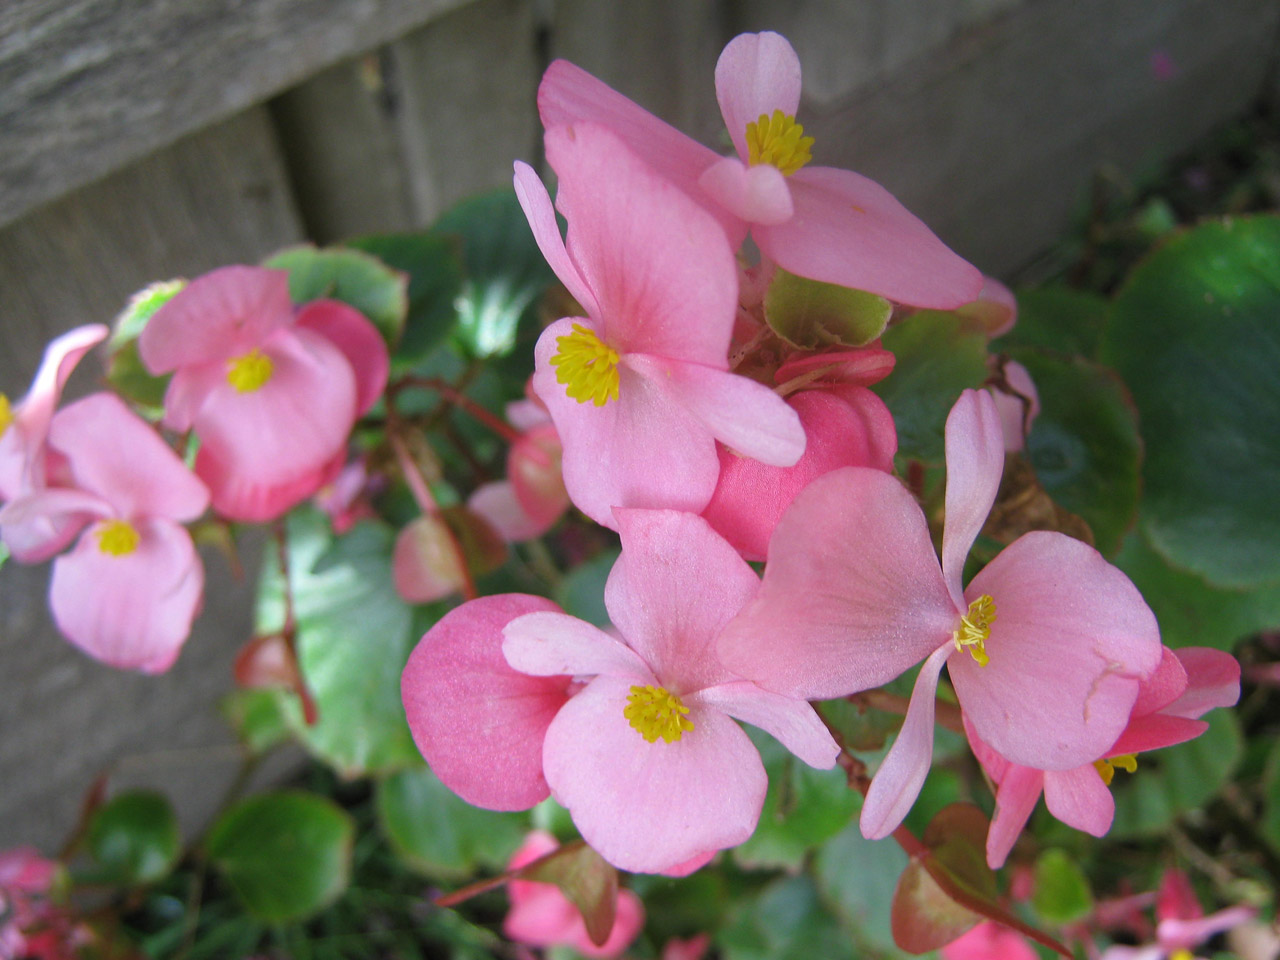 Low maintenance annuals for shade echters garden talk wax begonias are a steady mainstay of shaded beds but they can also handle sun flower colors are red pink or white and leaves can be either green or izmirmasajfo